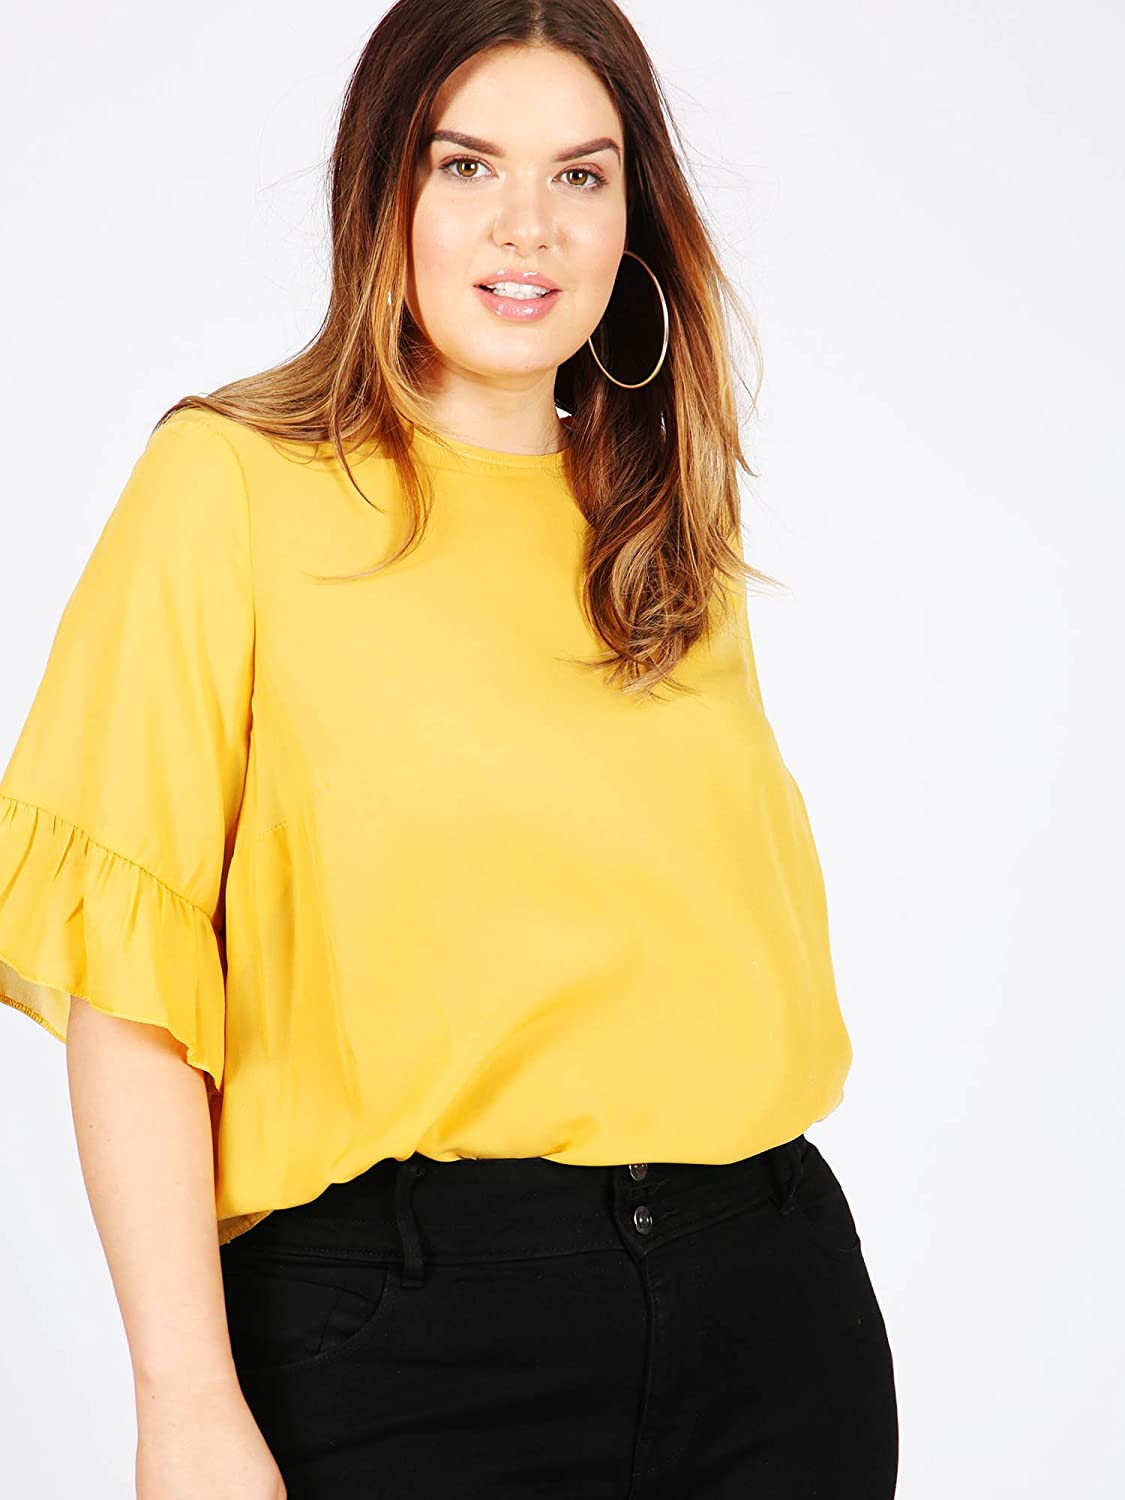 92ba7cf9dc1 Koko Women s Plus Size Mustard Yellow Blouse with 3 4 Frilled Sleeves (16)   Amazon.co.uk  Clothing